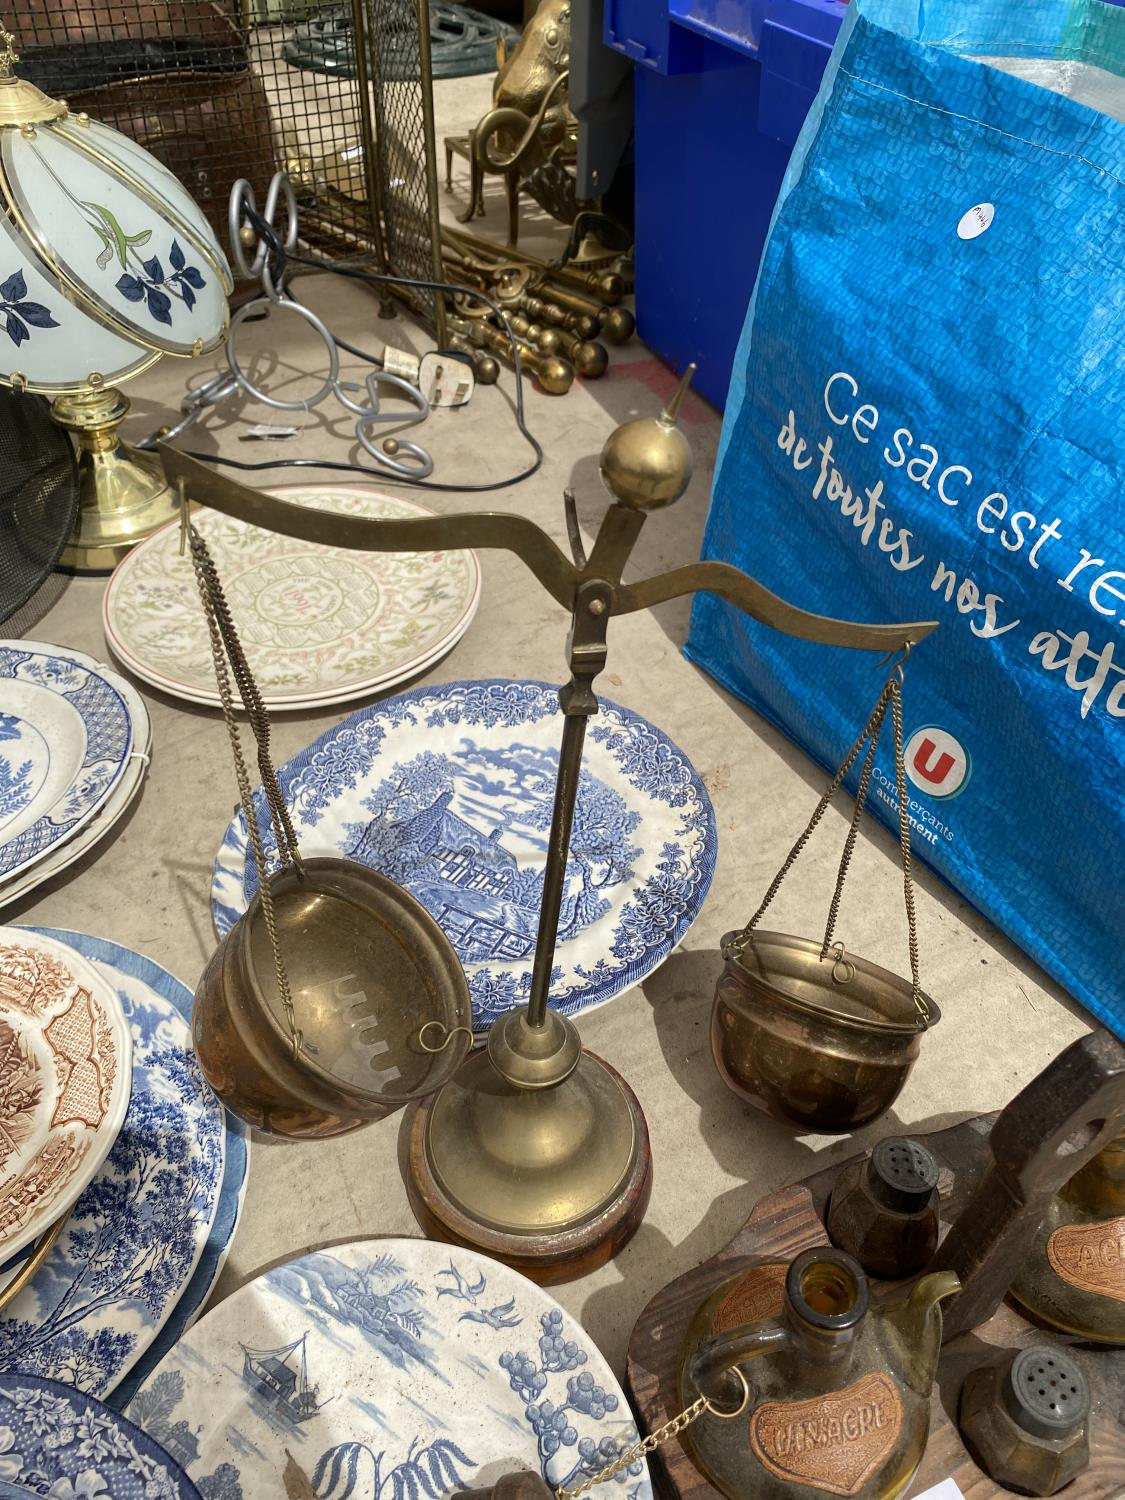 AN ASSORTMENT OF ITEMS TO INCLUDE BLUE AND WHITE CERAMICS PLATES, A GLASS LAMP AND BALANCE SCALES - Image 3 of 4